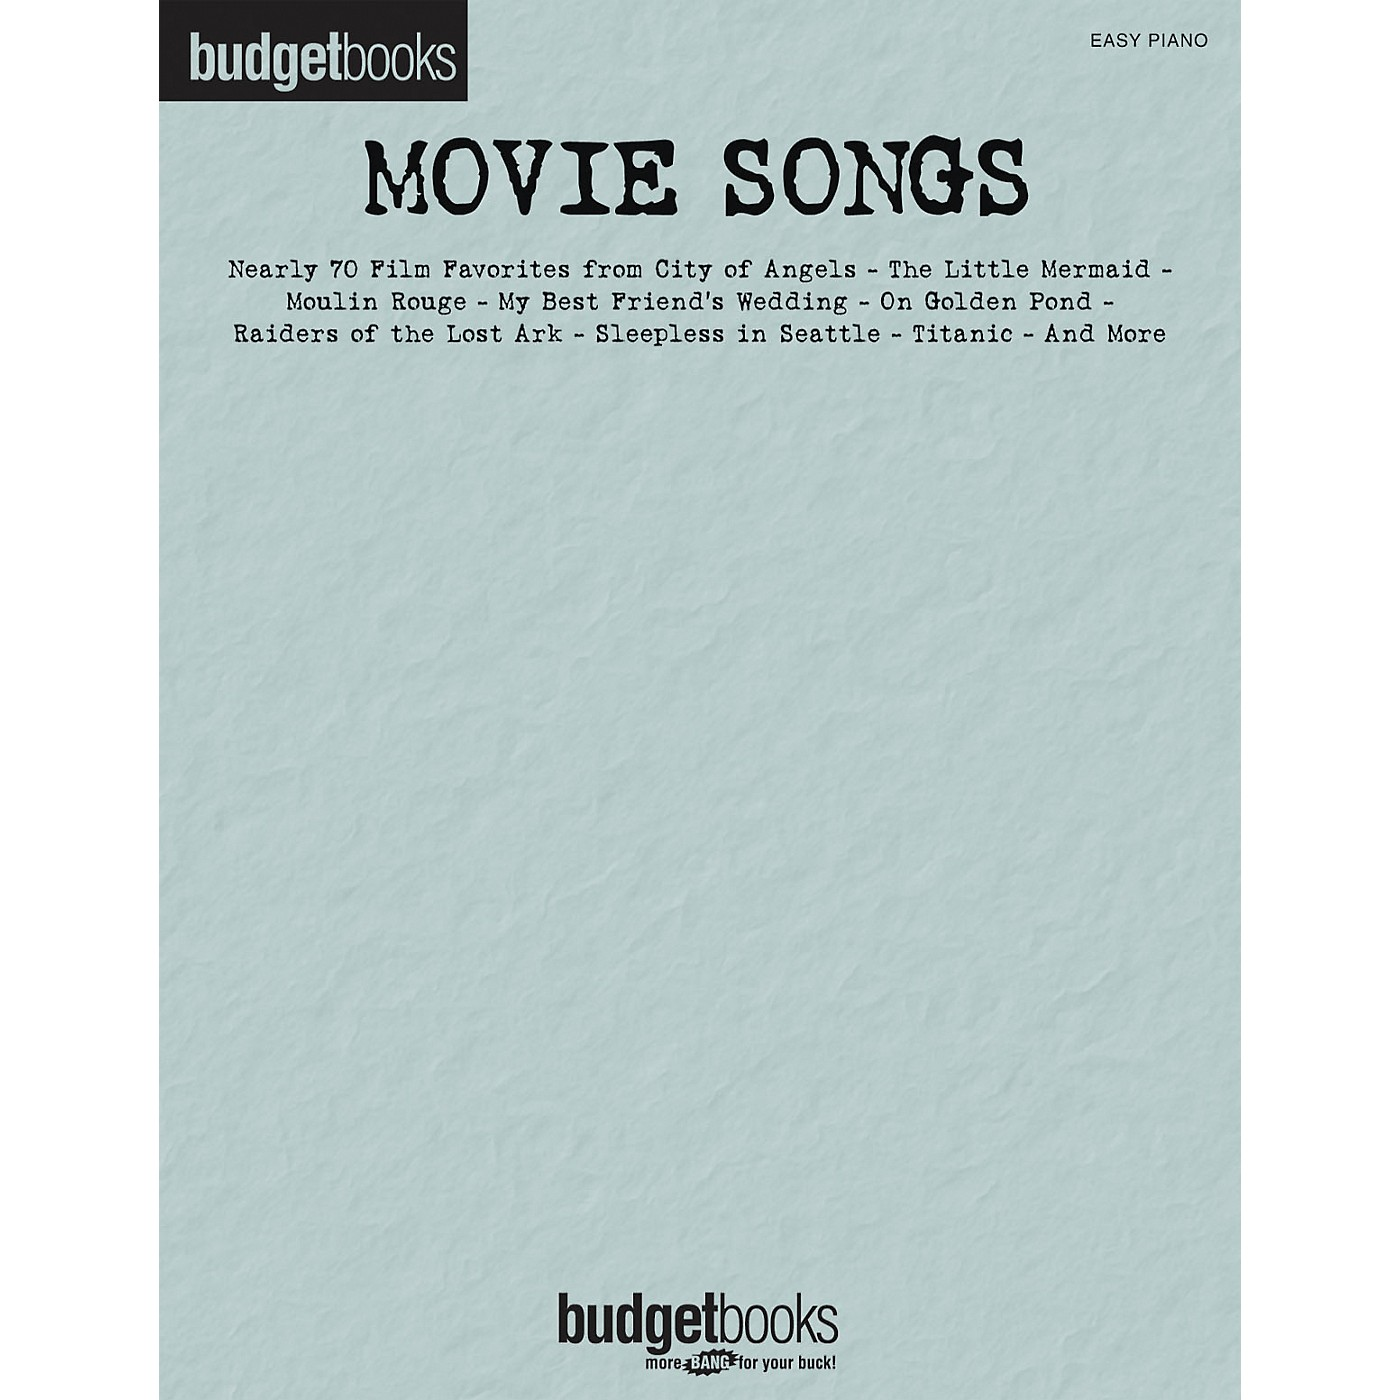 Hal Leonard Movie Songs - Budget Book Series For Easy Piano thumbnail